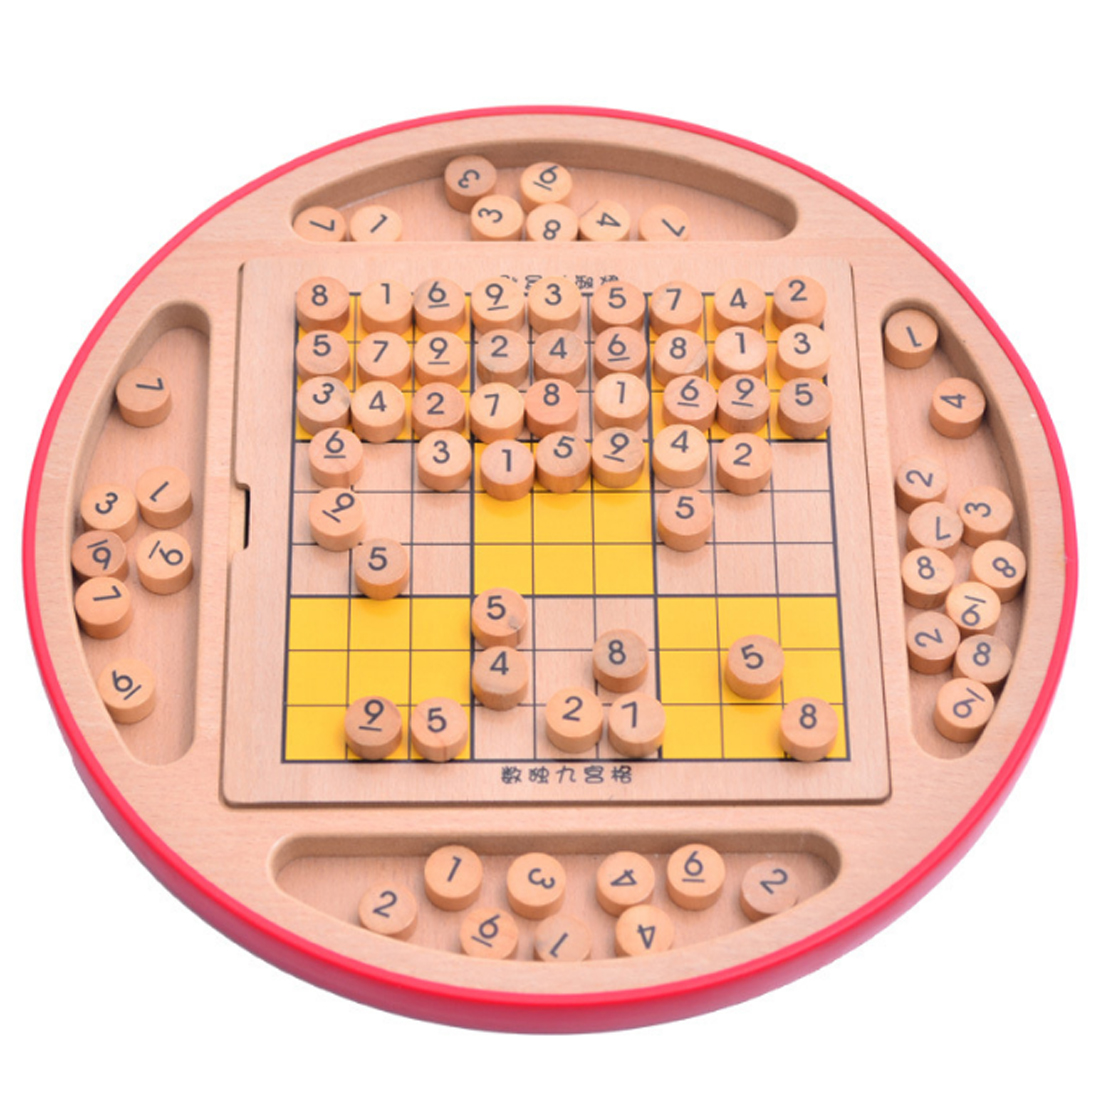 Multifunction Wooden Adult Desktop Game Sudoku Puzzle Game Board Toys